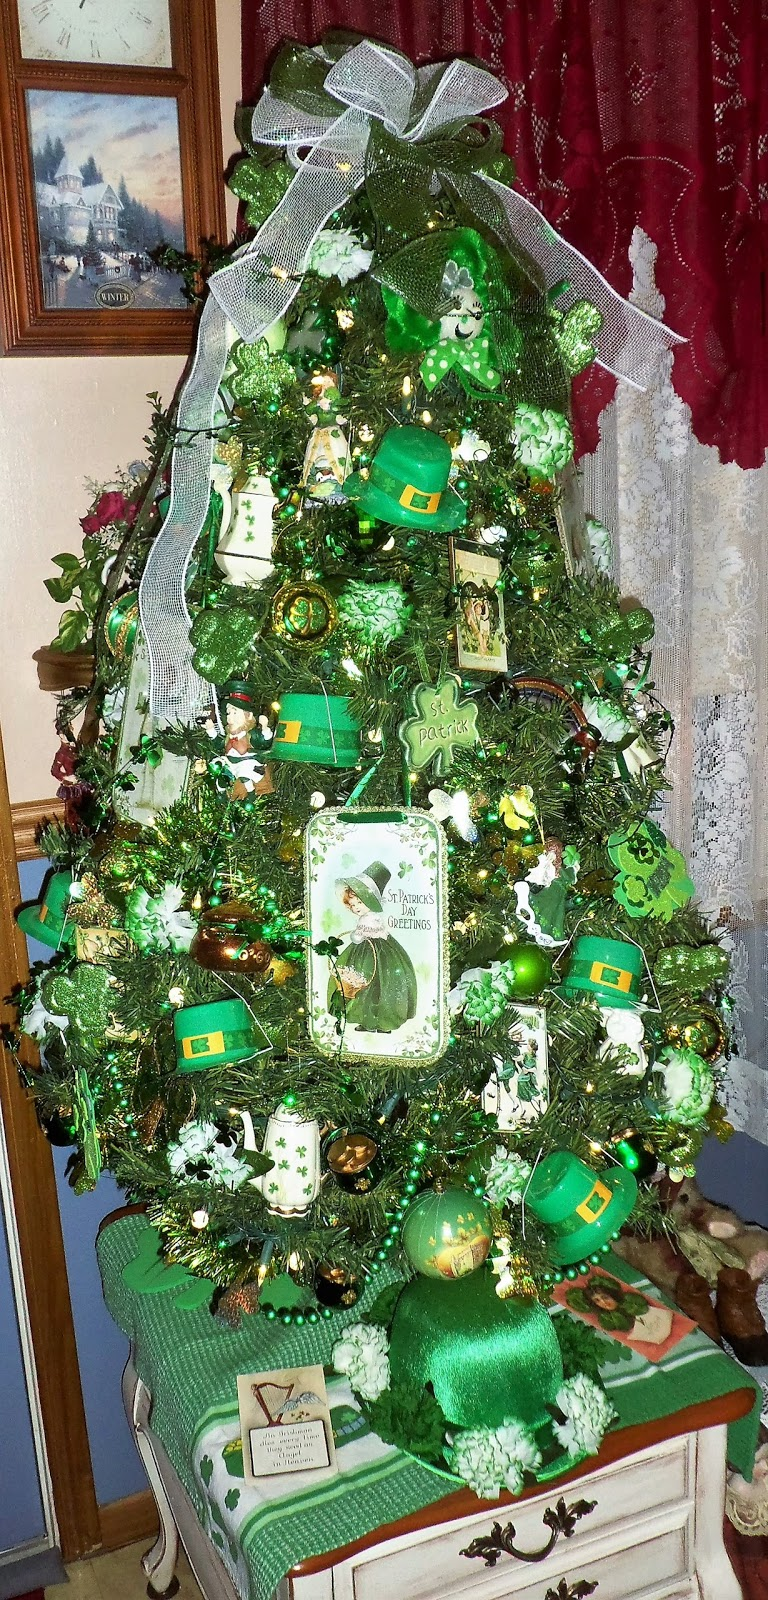 St. Patrick's Day Tree in the Den, 2017